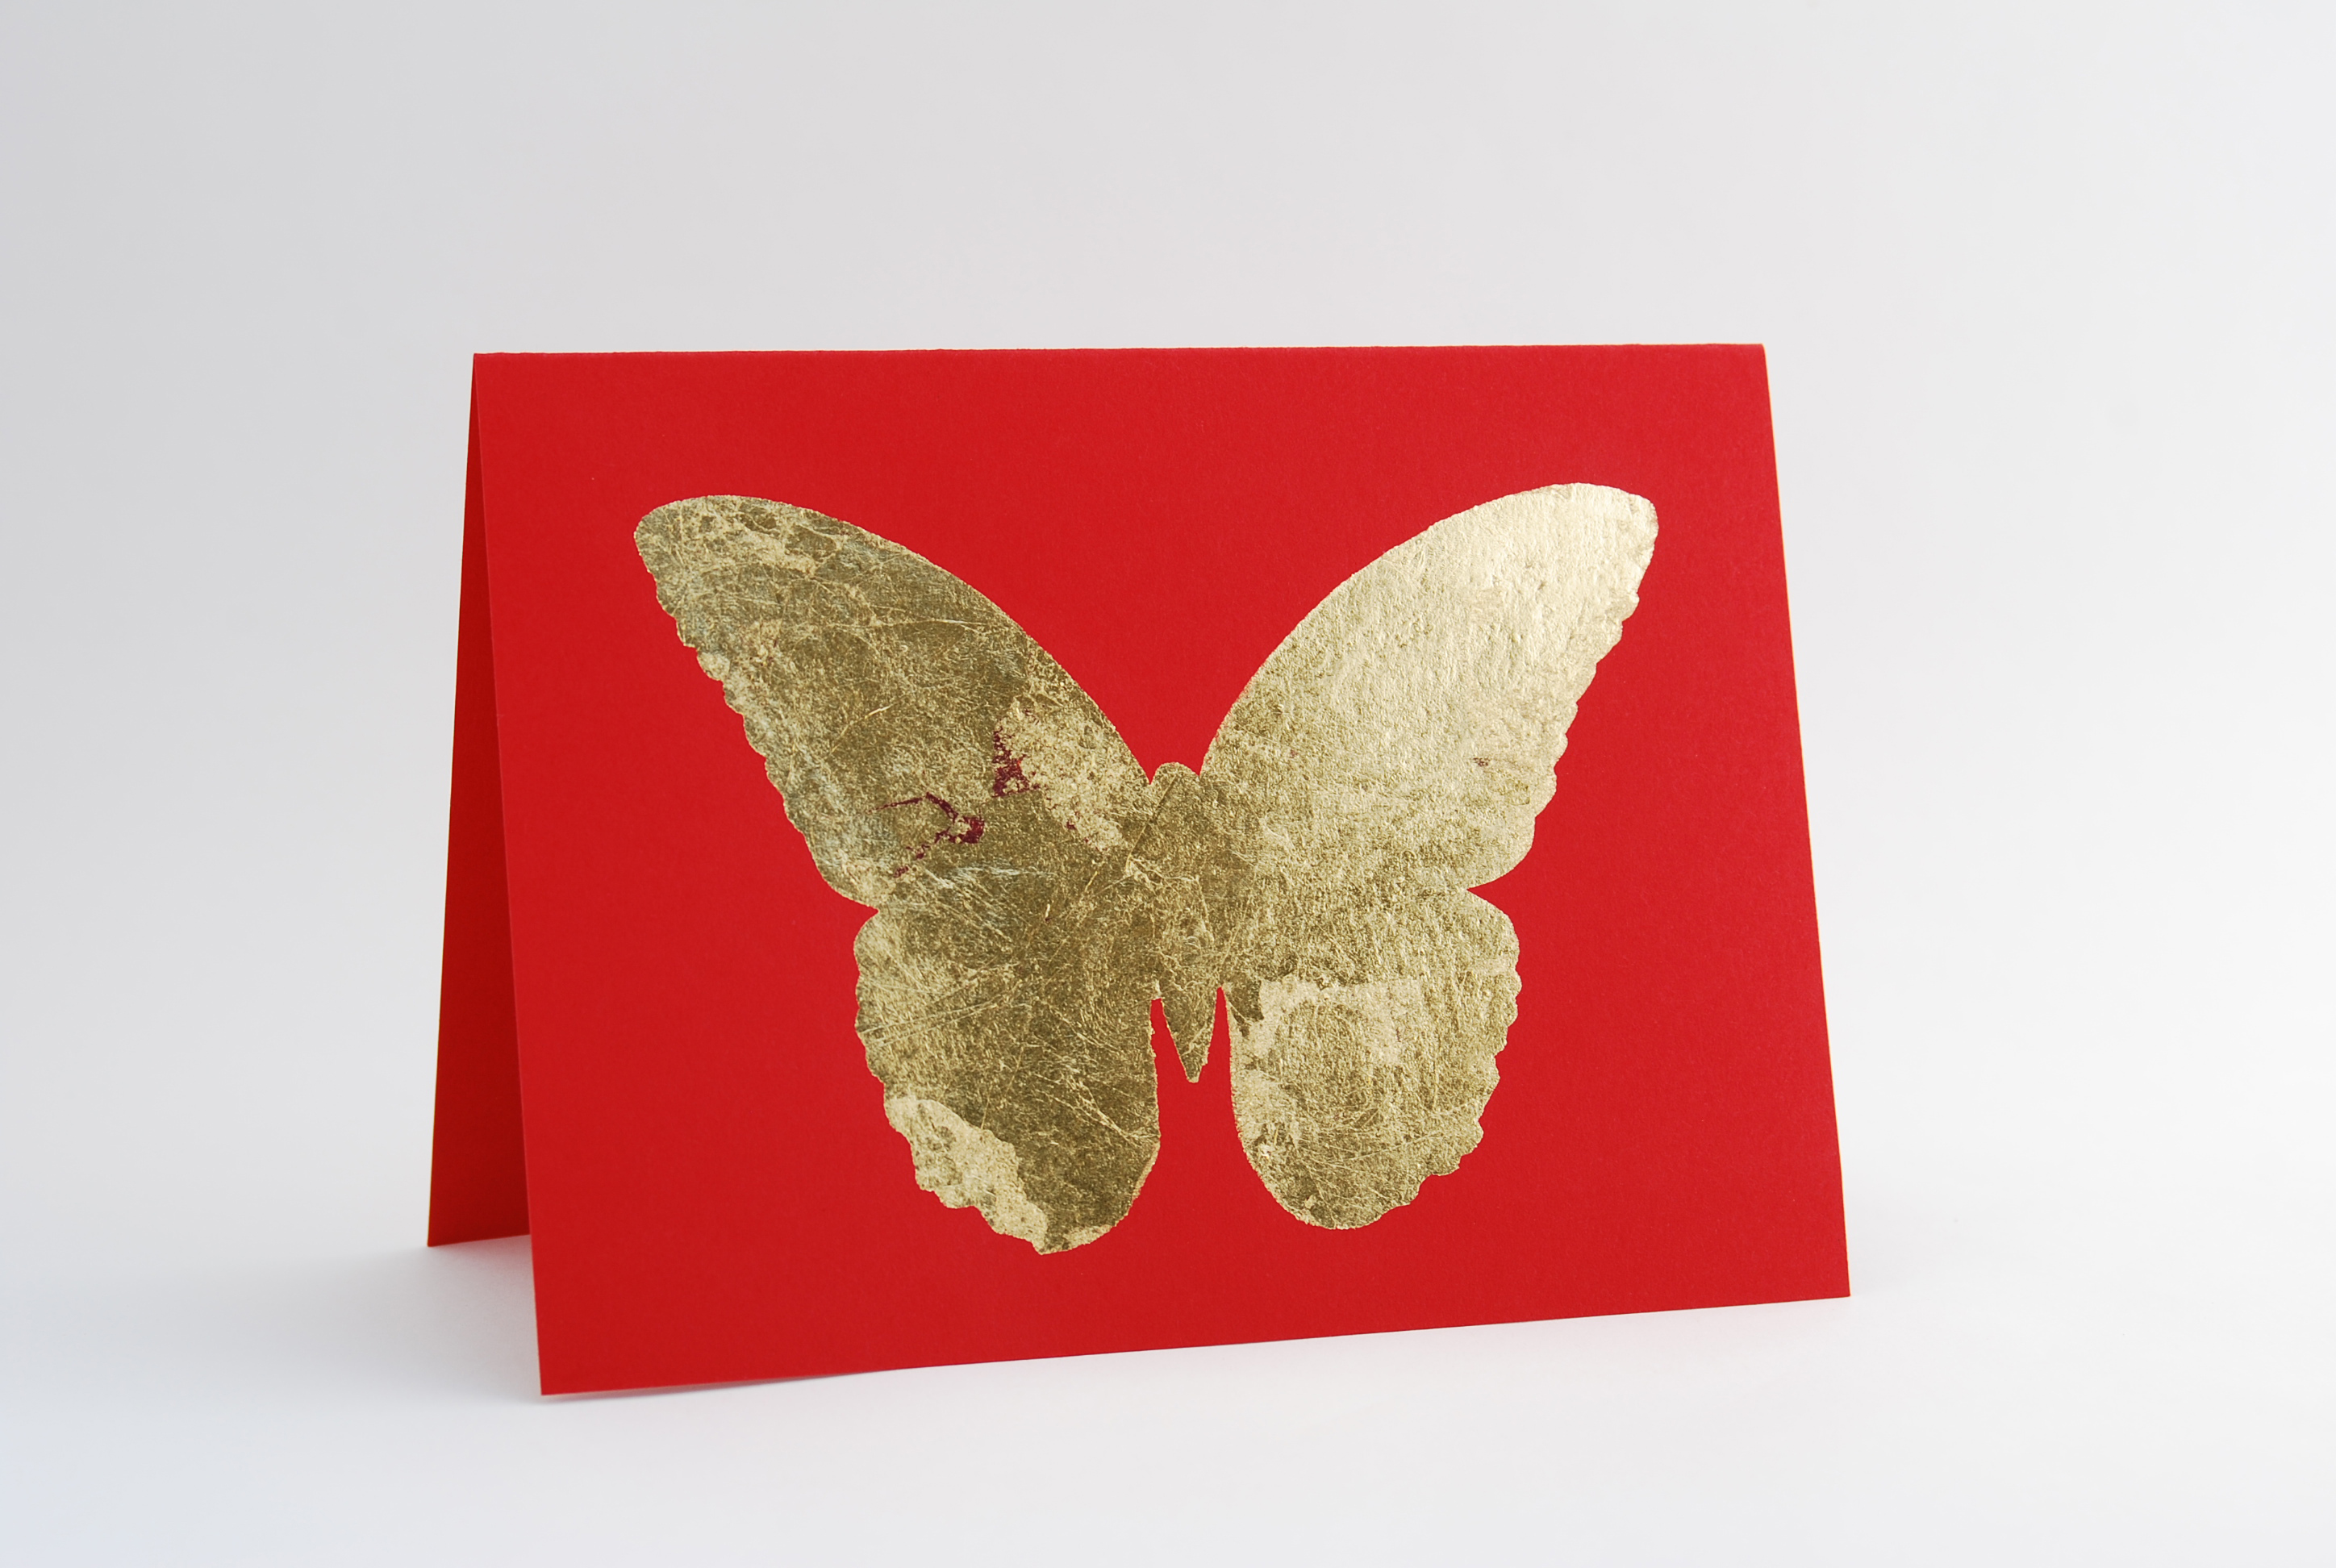 Gold-foiled butterfly